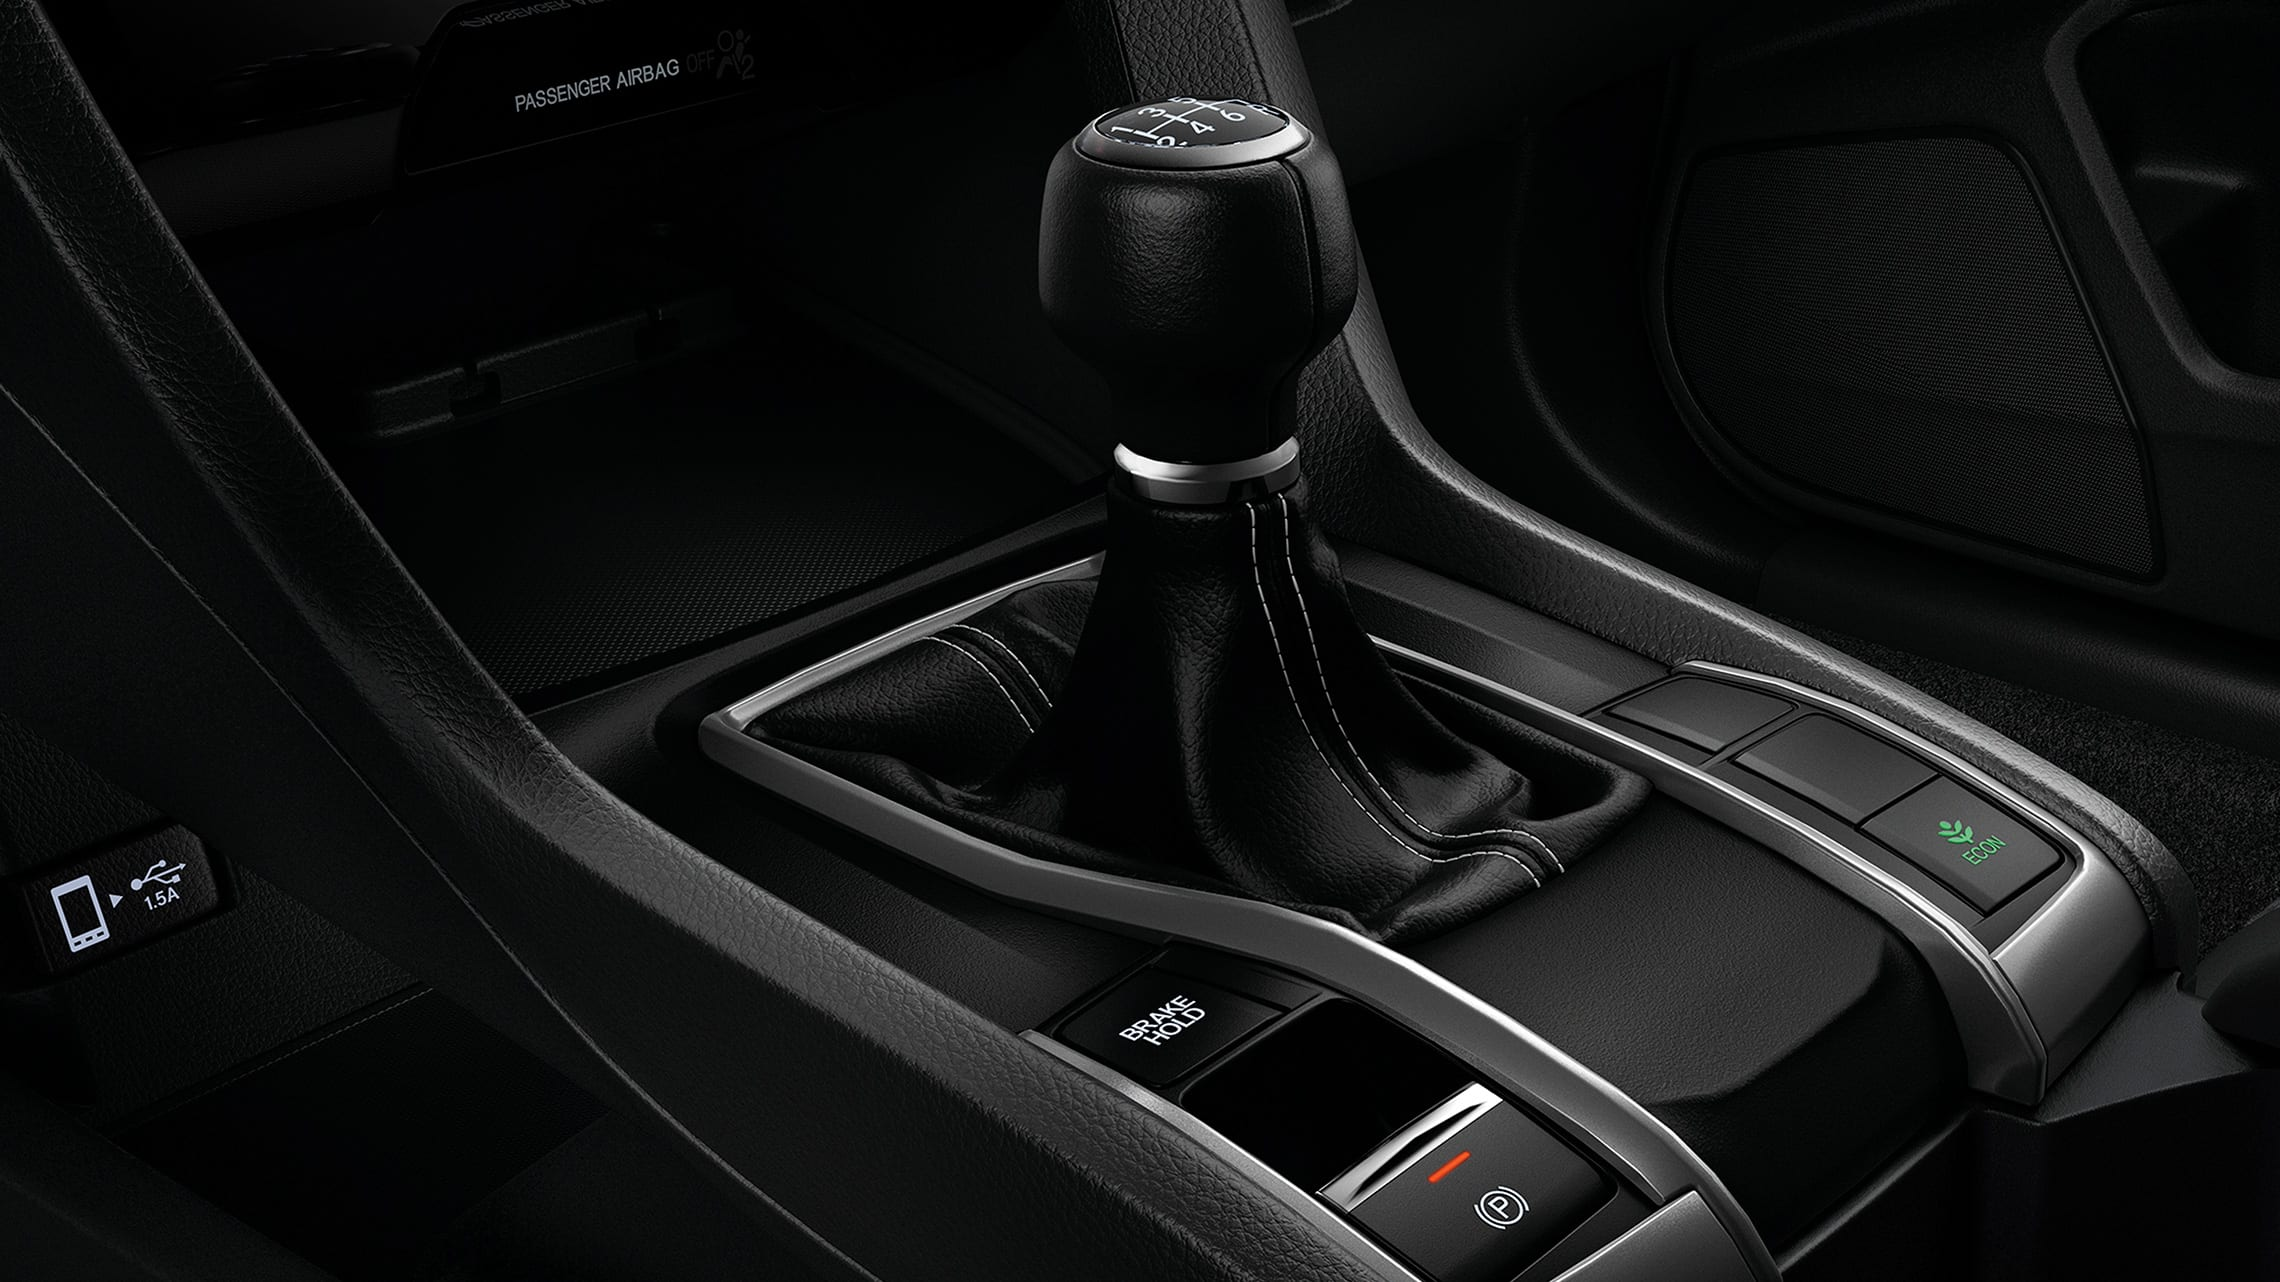 6-speed manual transmission shifter detail in the 2021 Honda Civic Sport Hatchback.